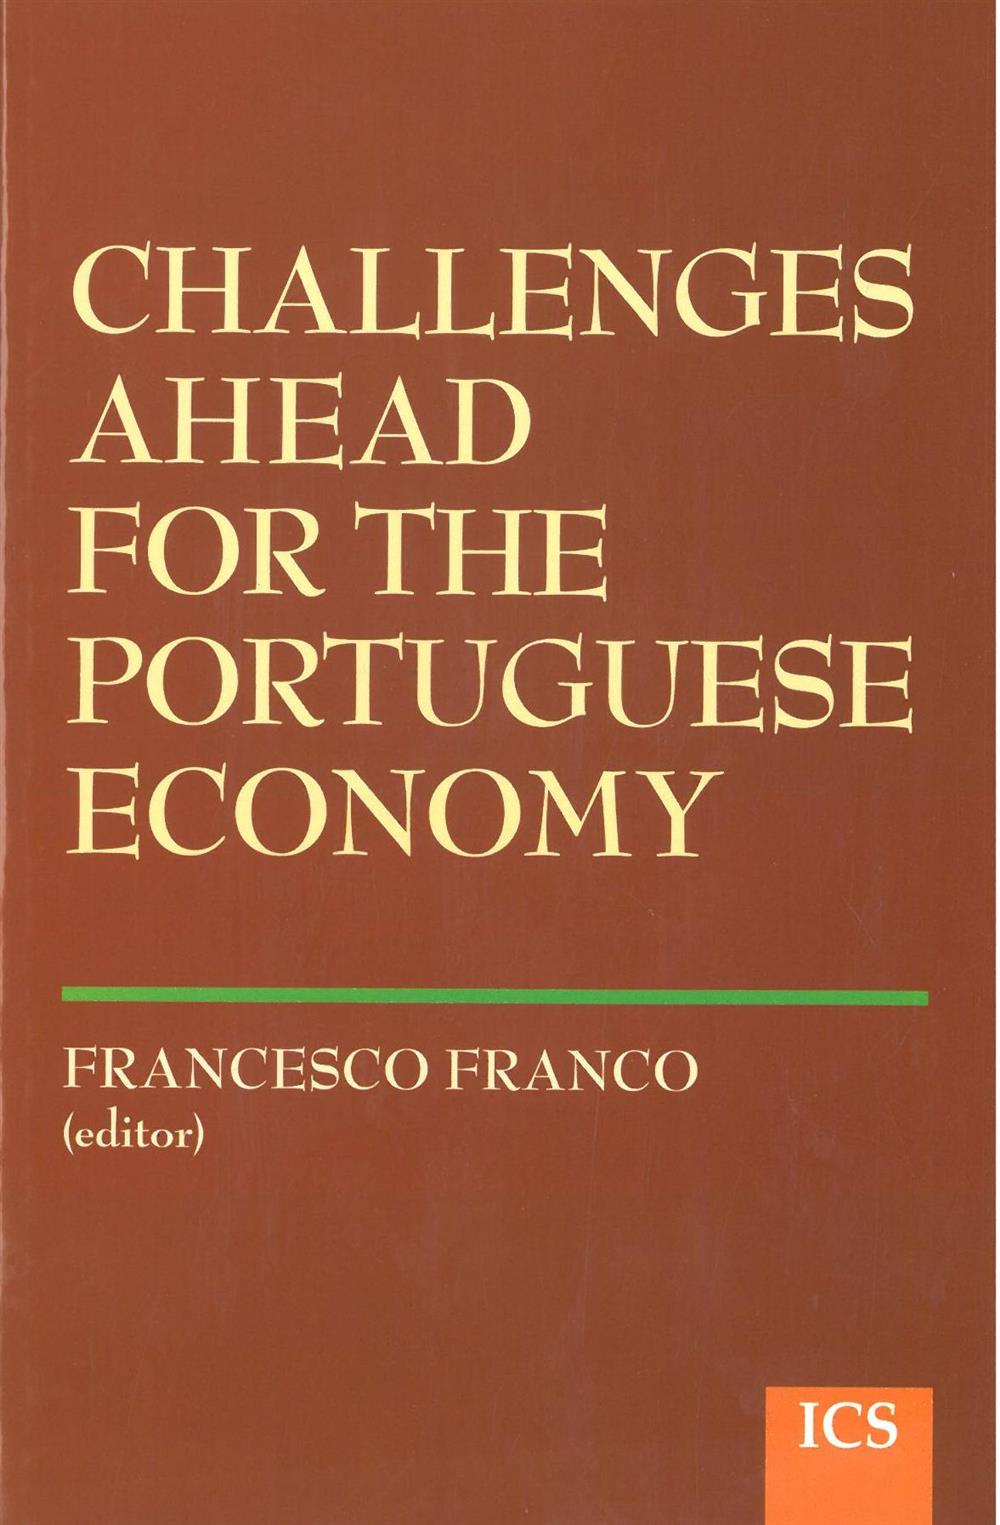 Challenges ahead for the portuguese economy_.jpg